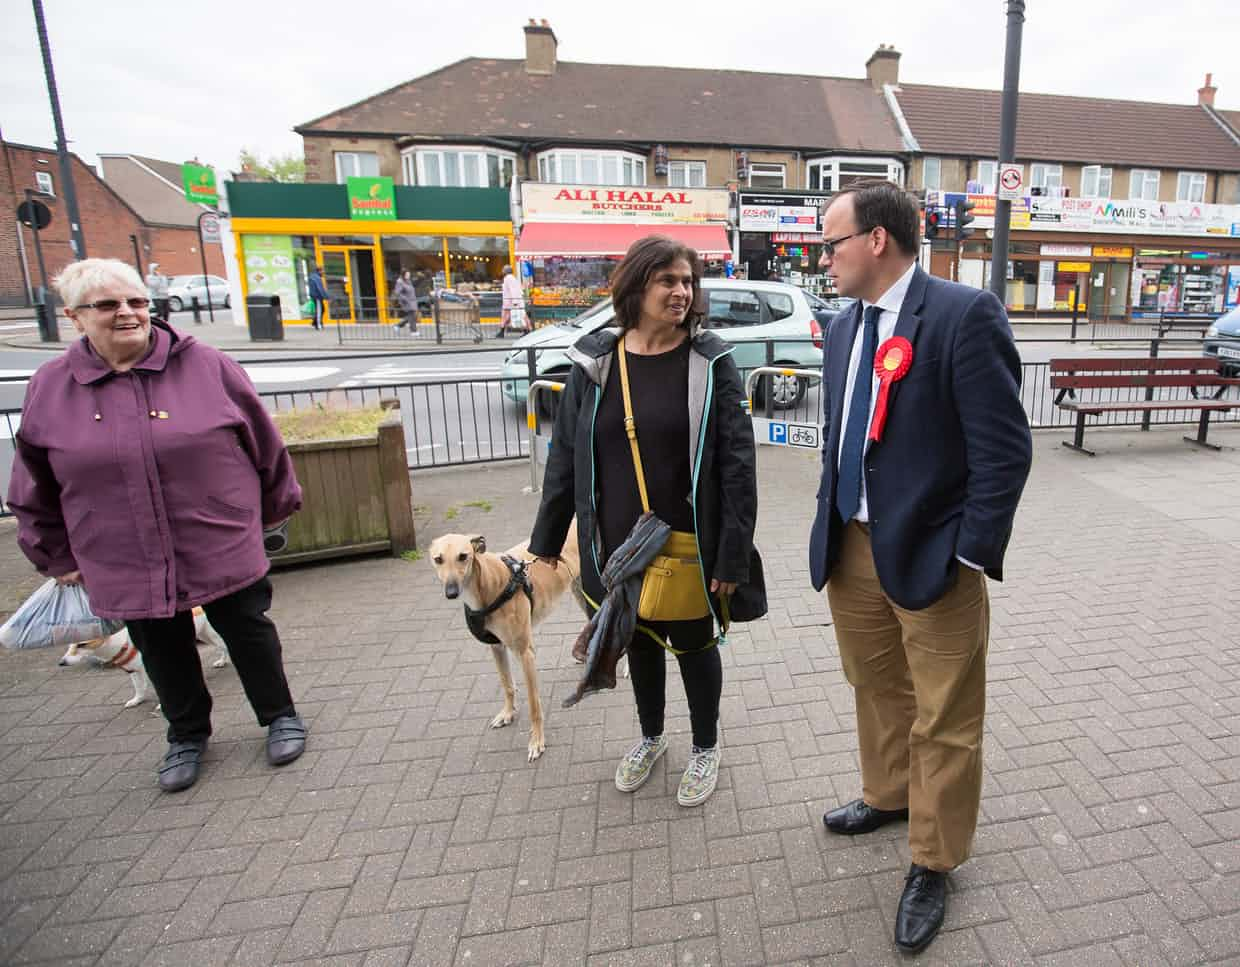 Thomas out canvassing in Harrow. Photograph: Graeme Robertson for the Guardian